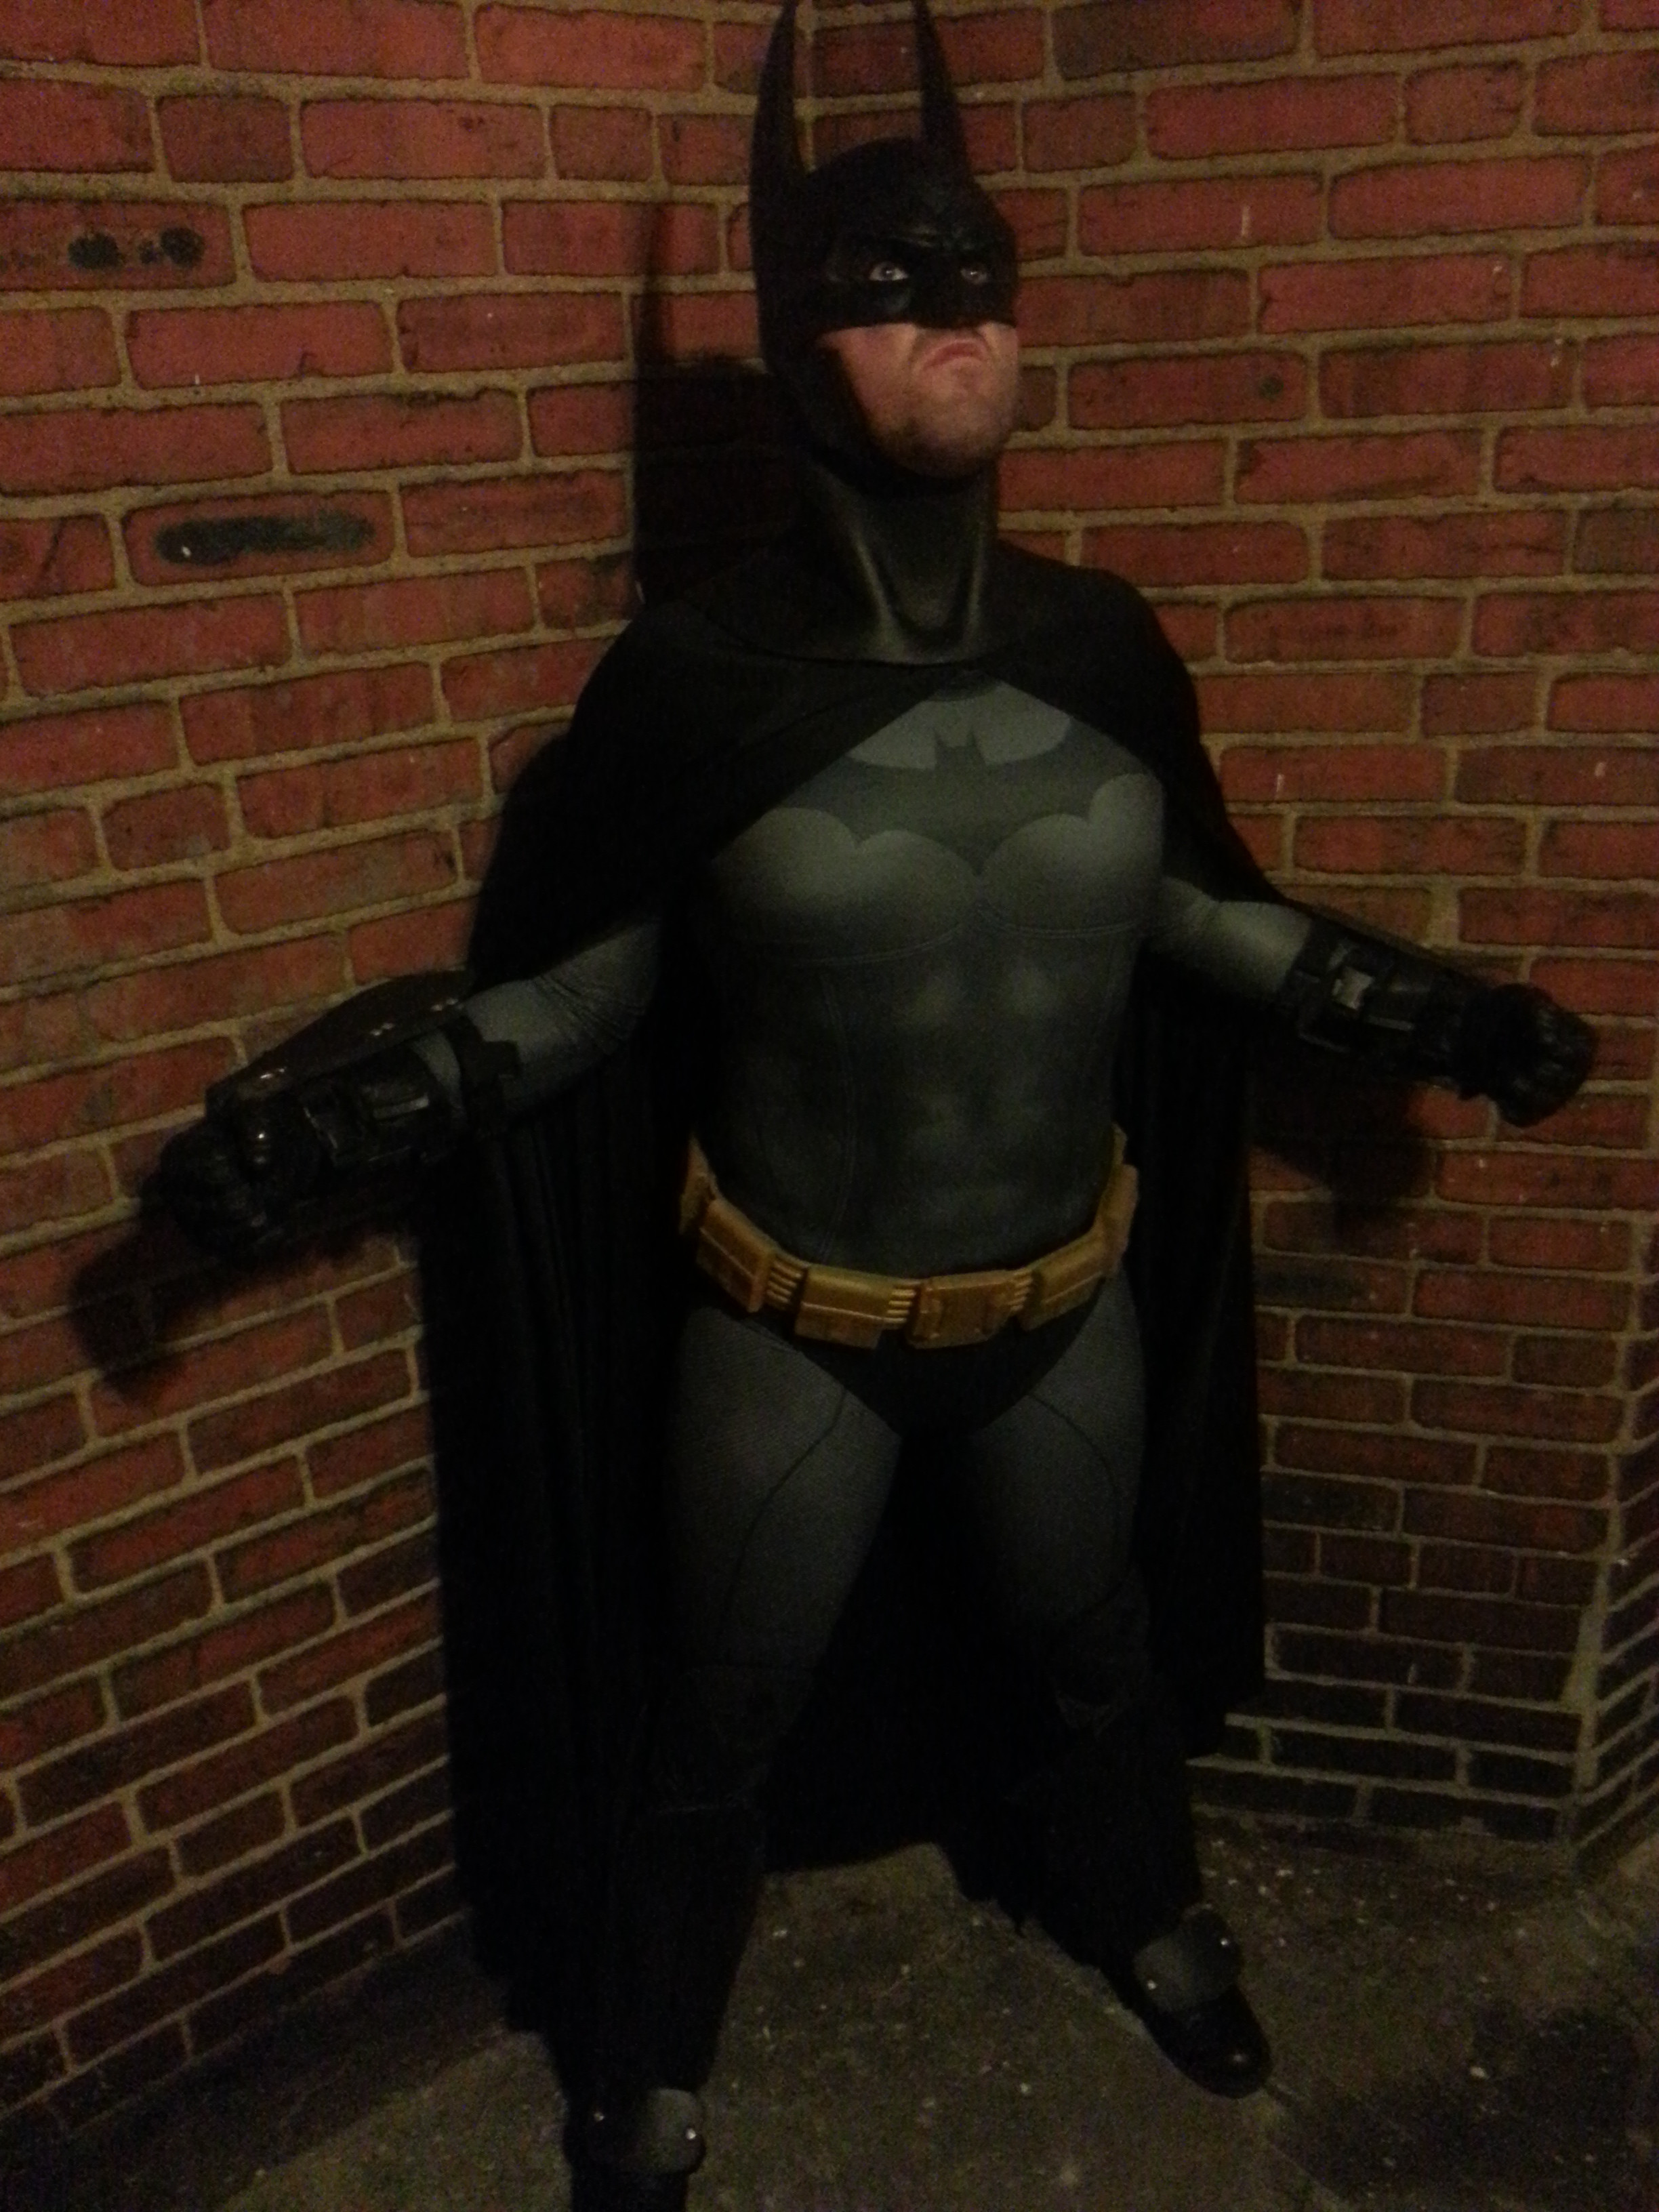 Arkham City Batman sub dye costume